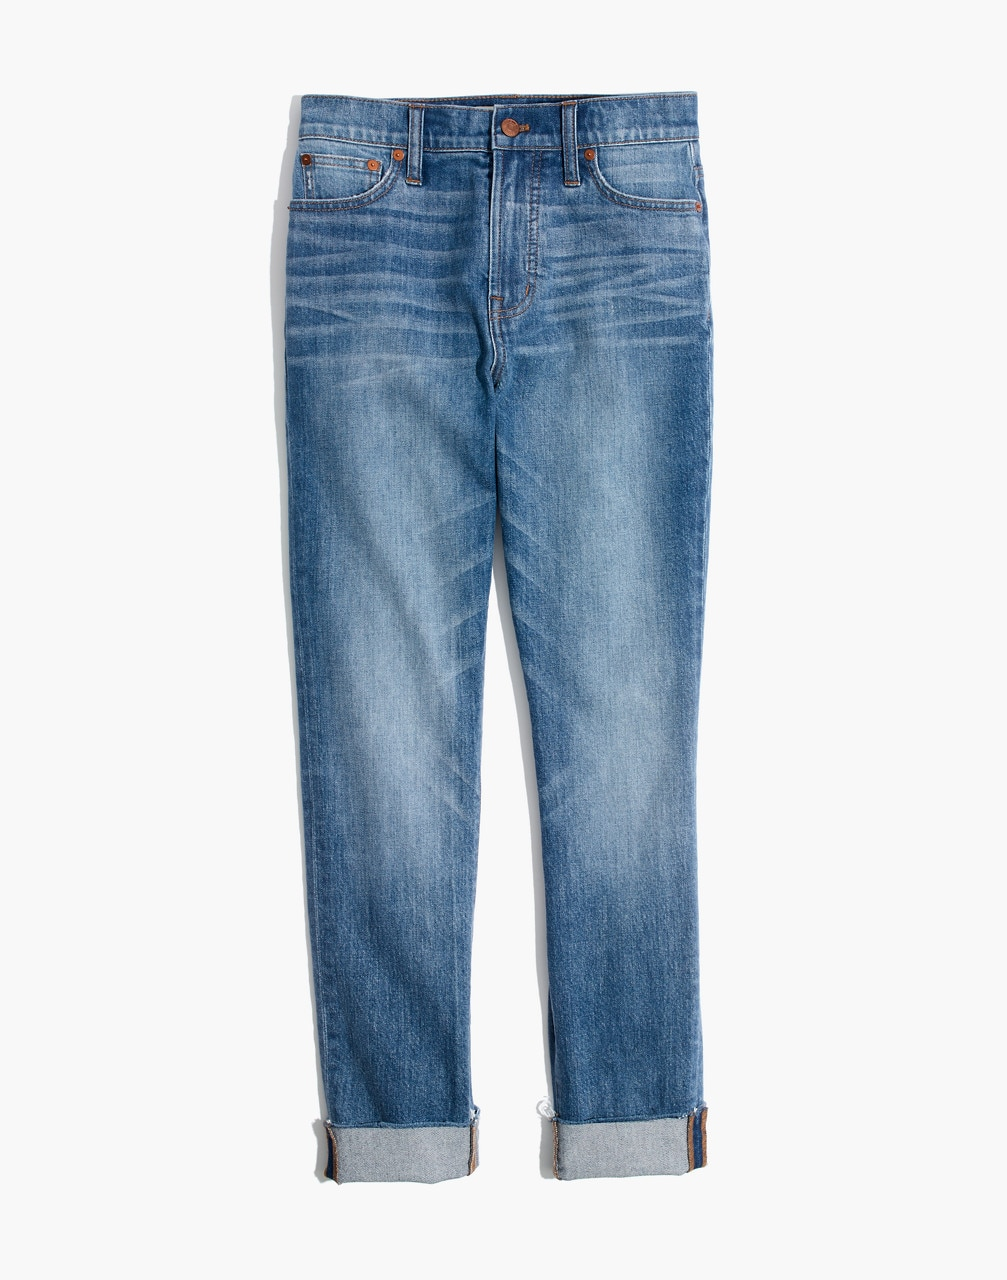 dad jeans, madewell